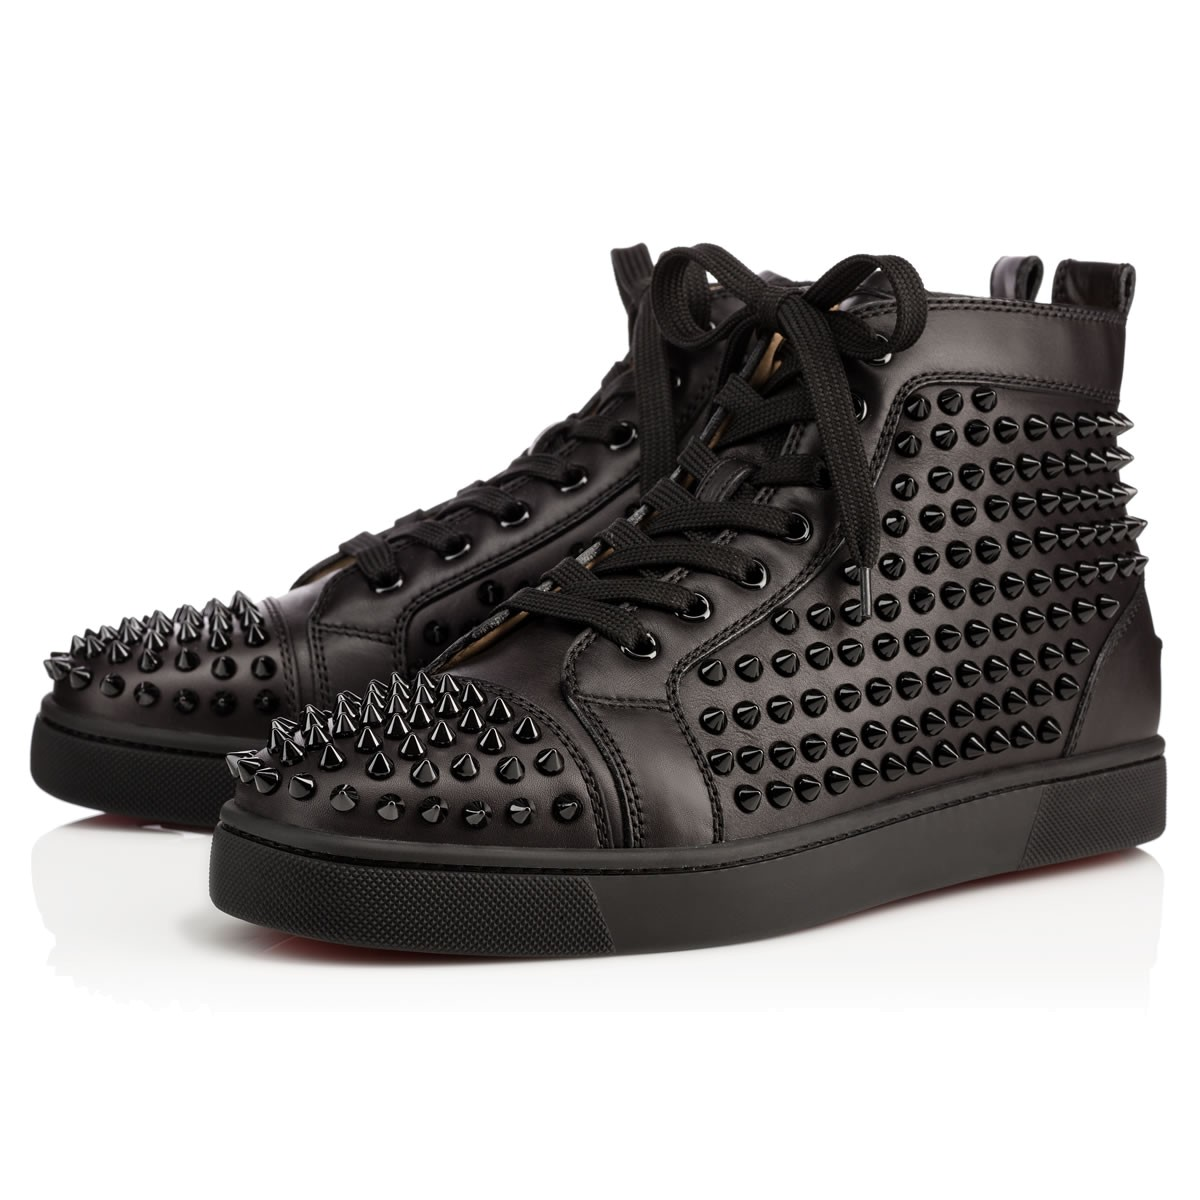 low priced 43a7b e1d3f Louis Spikes Black/Black/Bk Leather - Men Shoes - Christian Louboutin